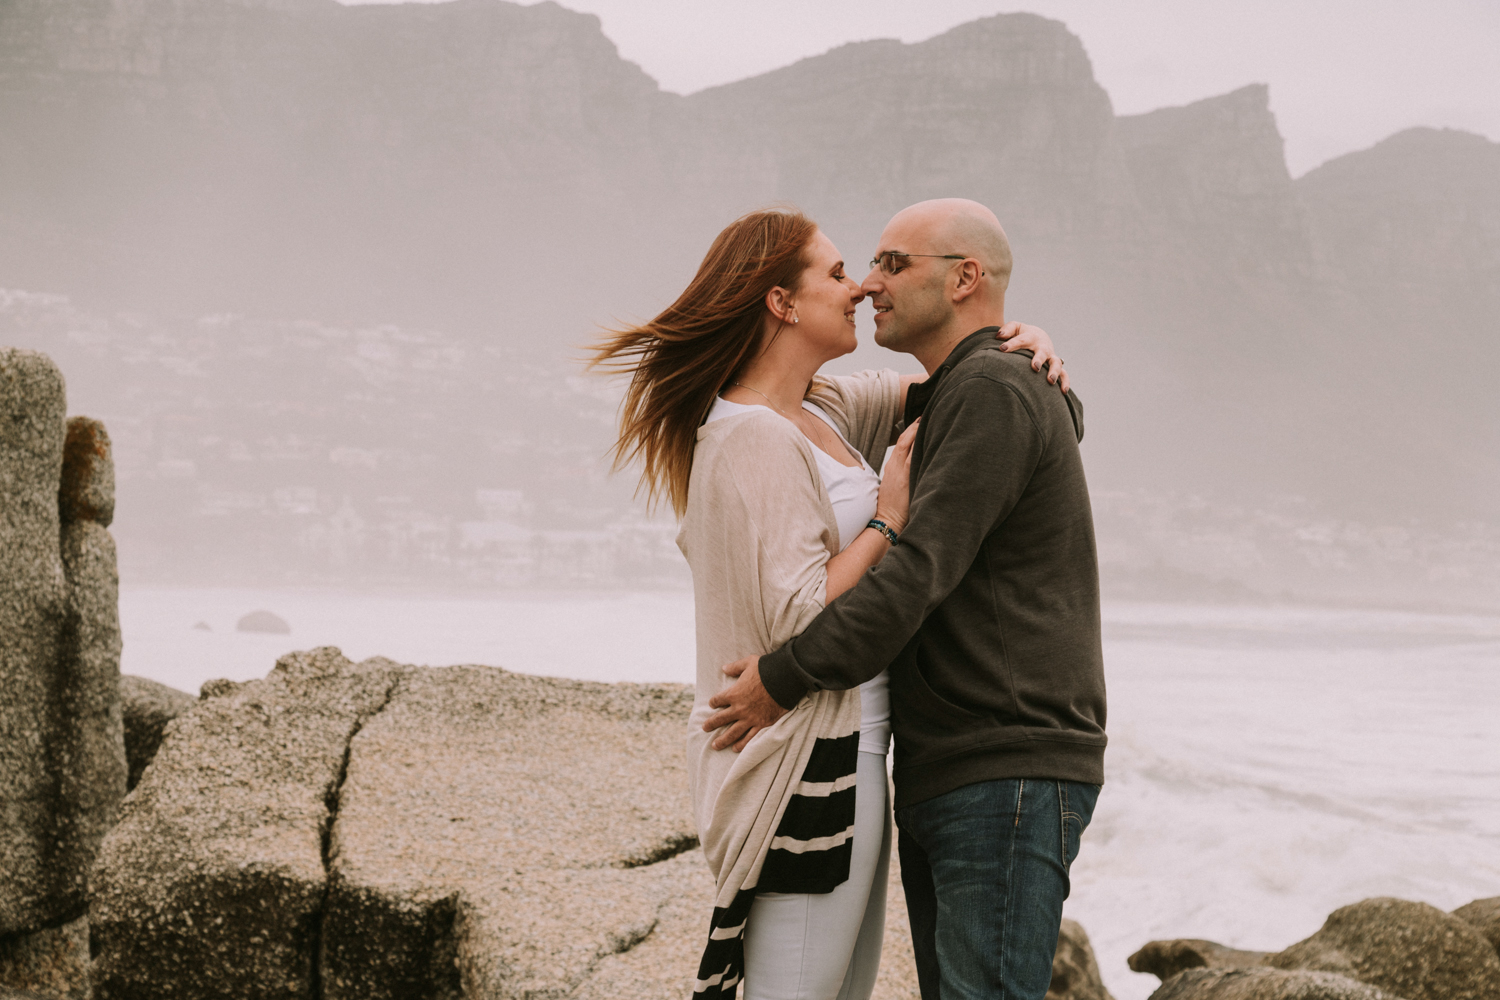 Enagagement photography Cape Town- Bianca Asher Photography-14.jpg